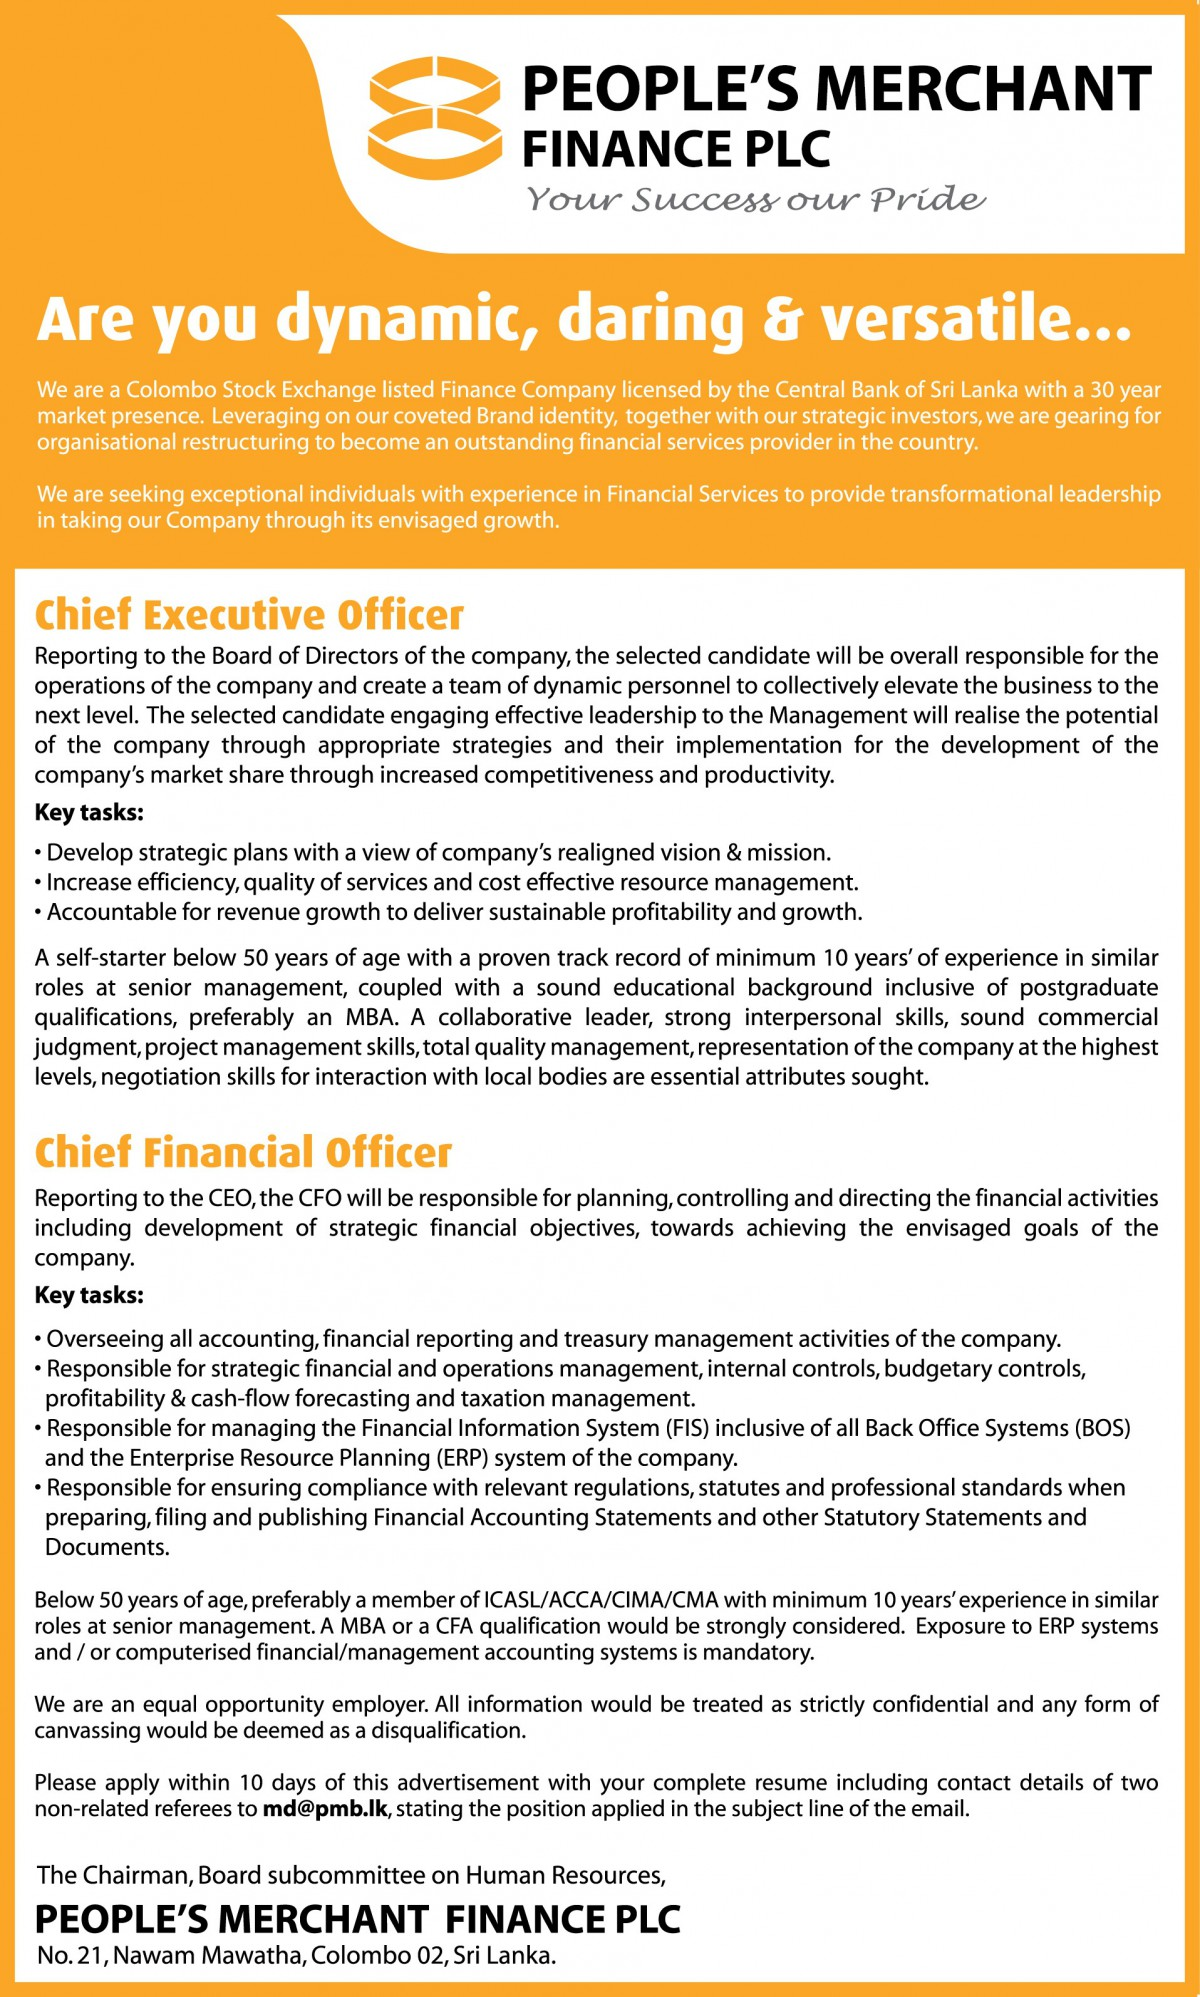 ceo cfo job vacancy in sri lanka below 50 years of age preferably a member of icasl acca cima cma minimum 10 years experience in similar roles at senior management